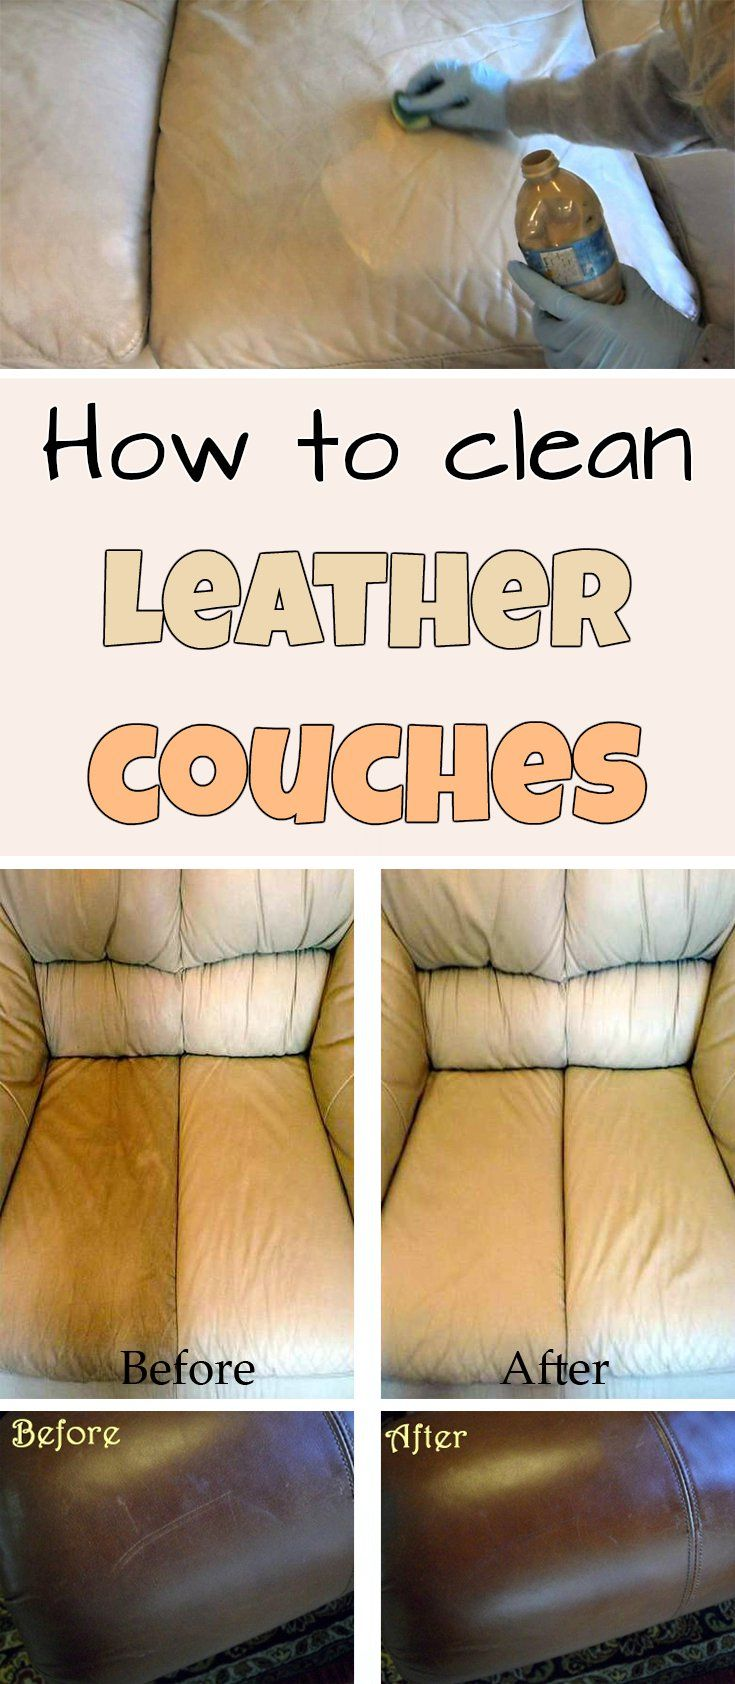 Remarkable How To Clean Leather Couches Mycleaningsolutions Com Download Free Architecture Designs Intelgarnamadebymaigaardcom